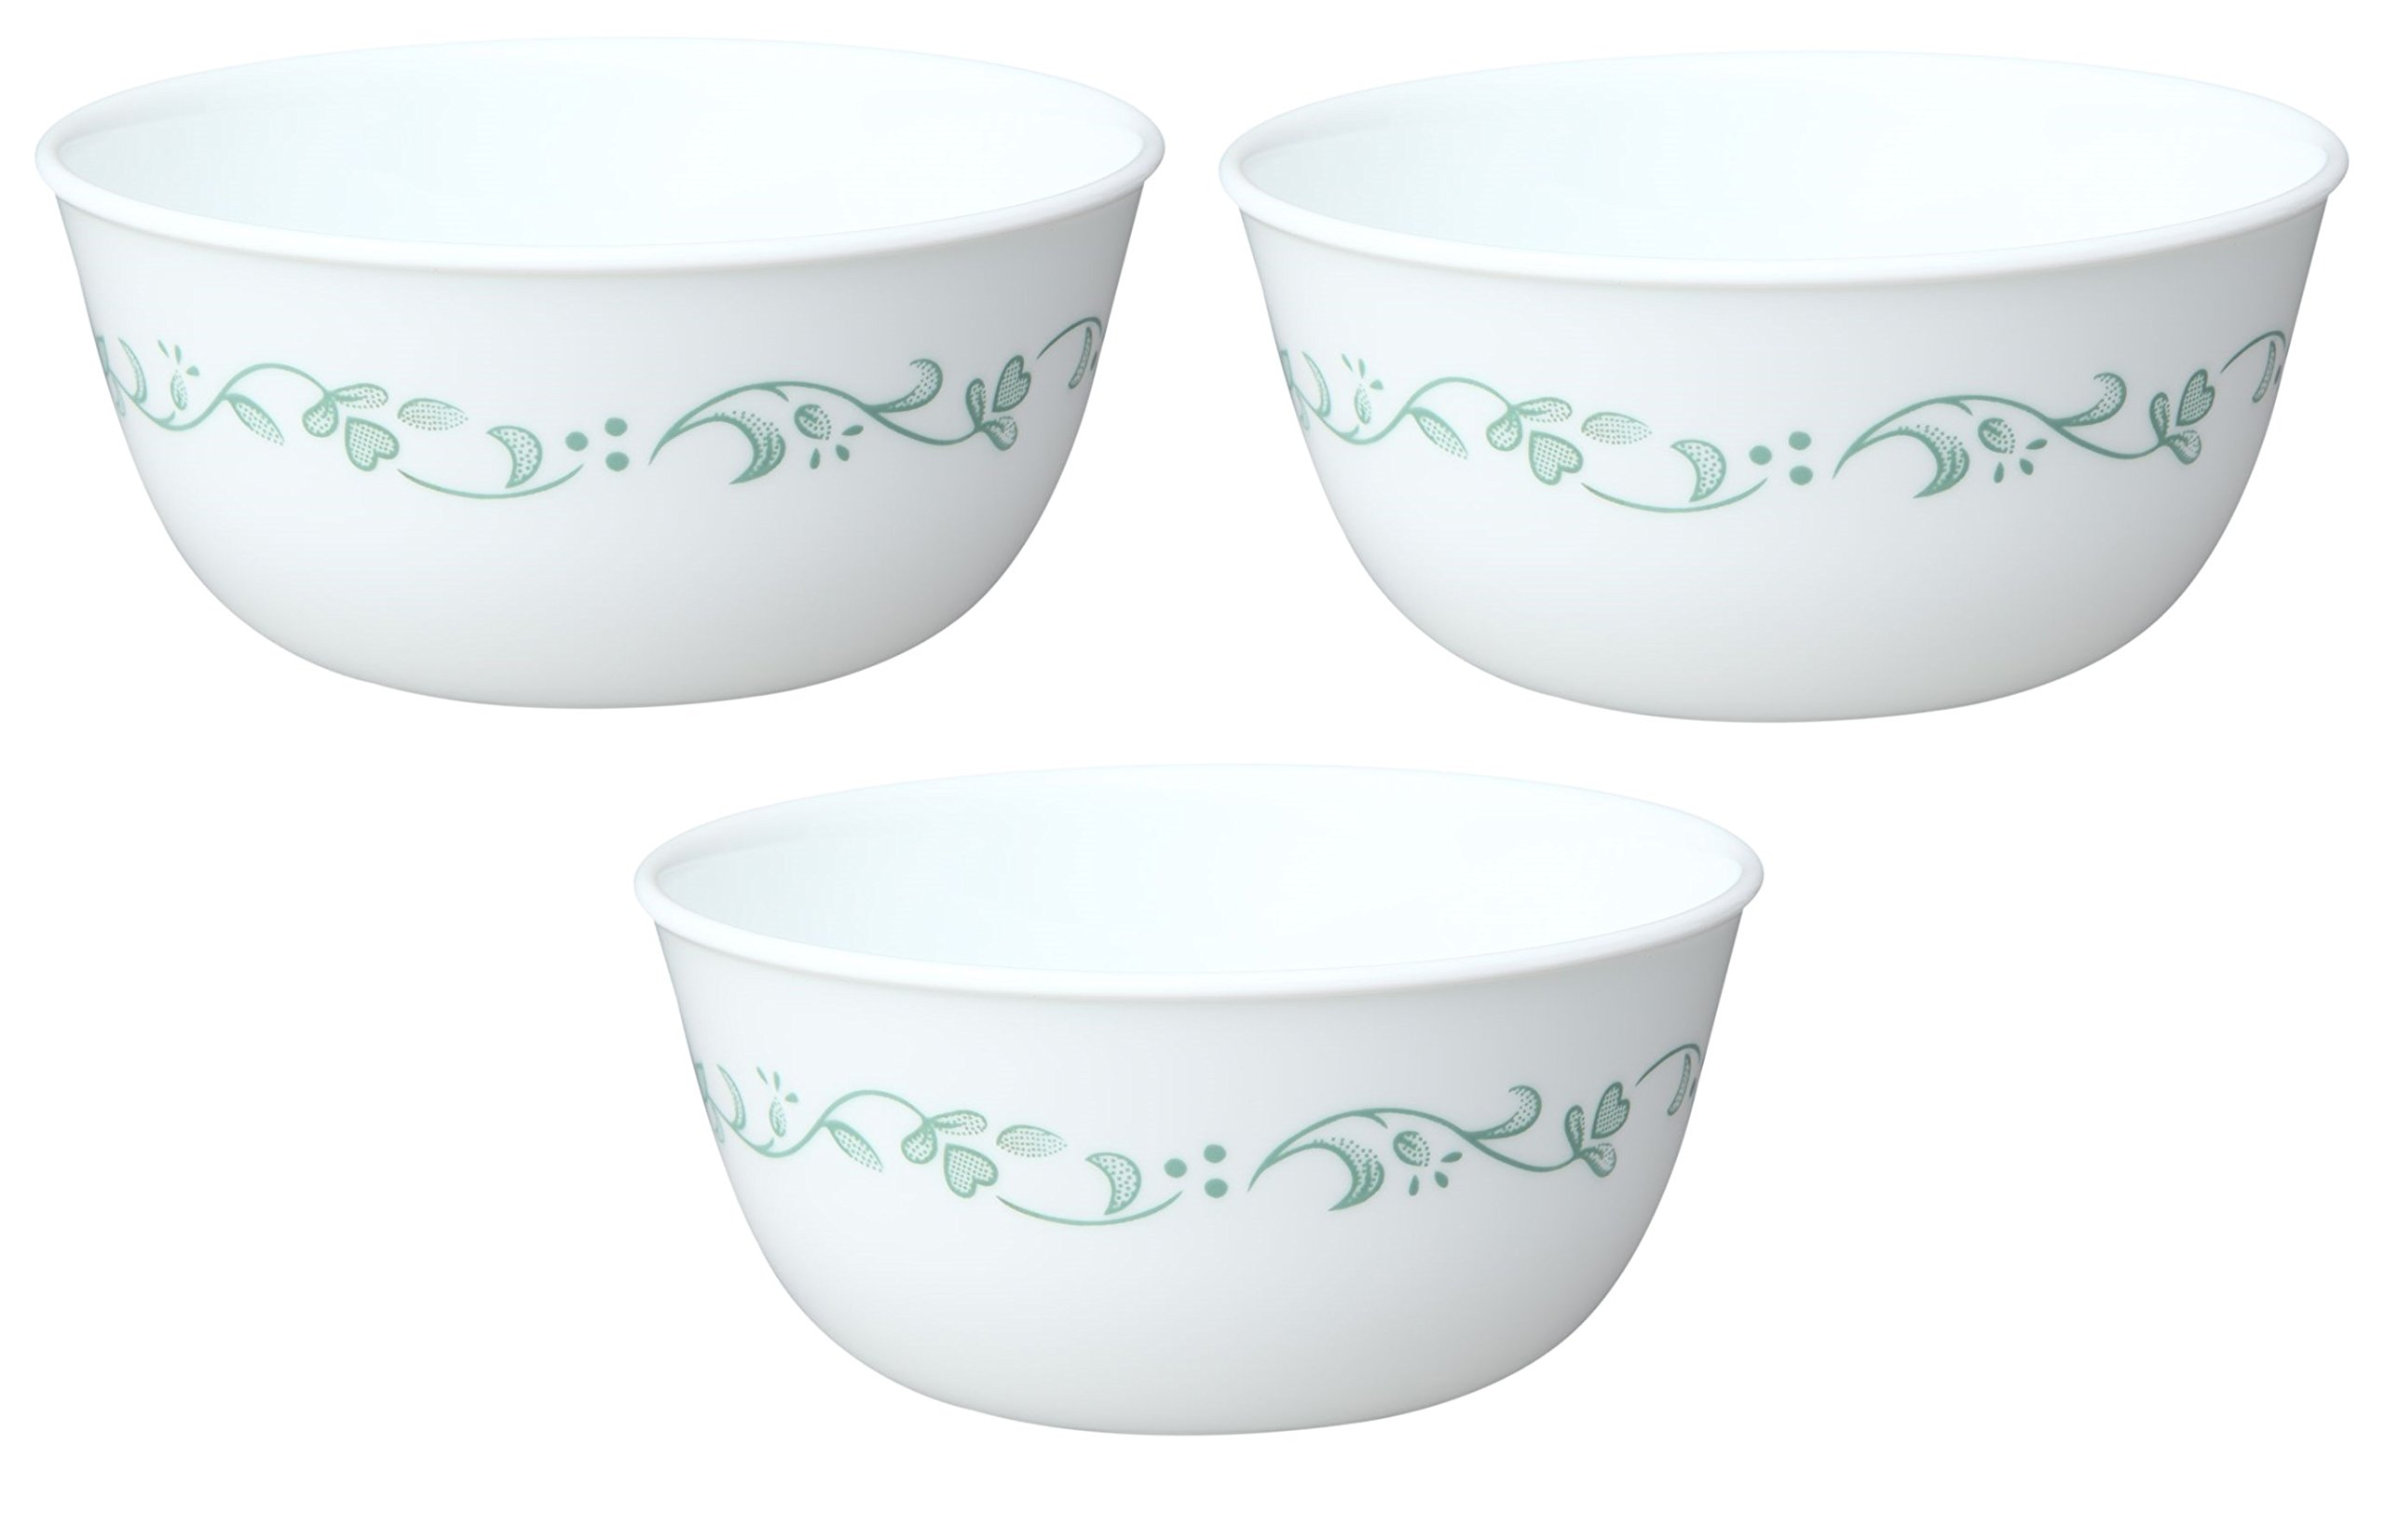 Corelle Livingware Country Cottage 28 Ounce Soup / Cereal Bowl Bowl (Set of 3)